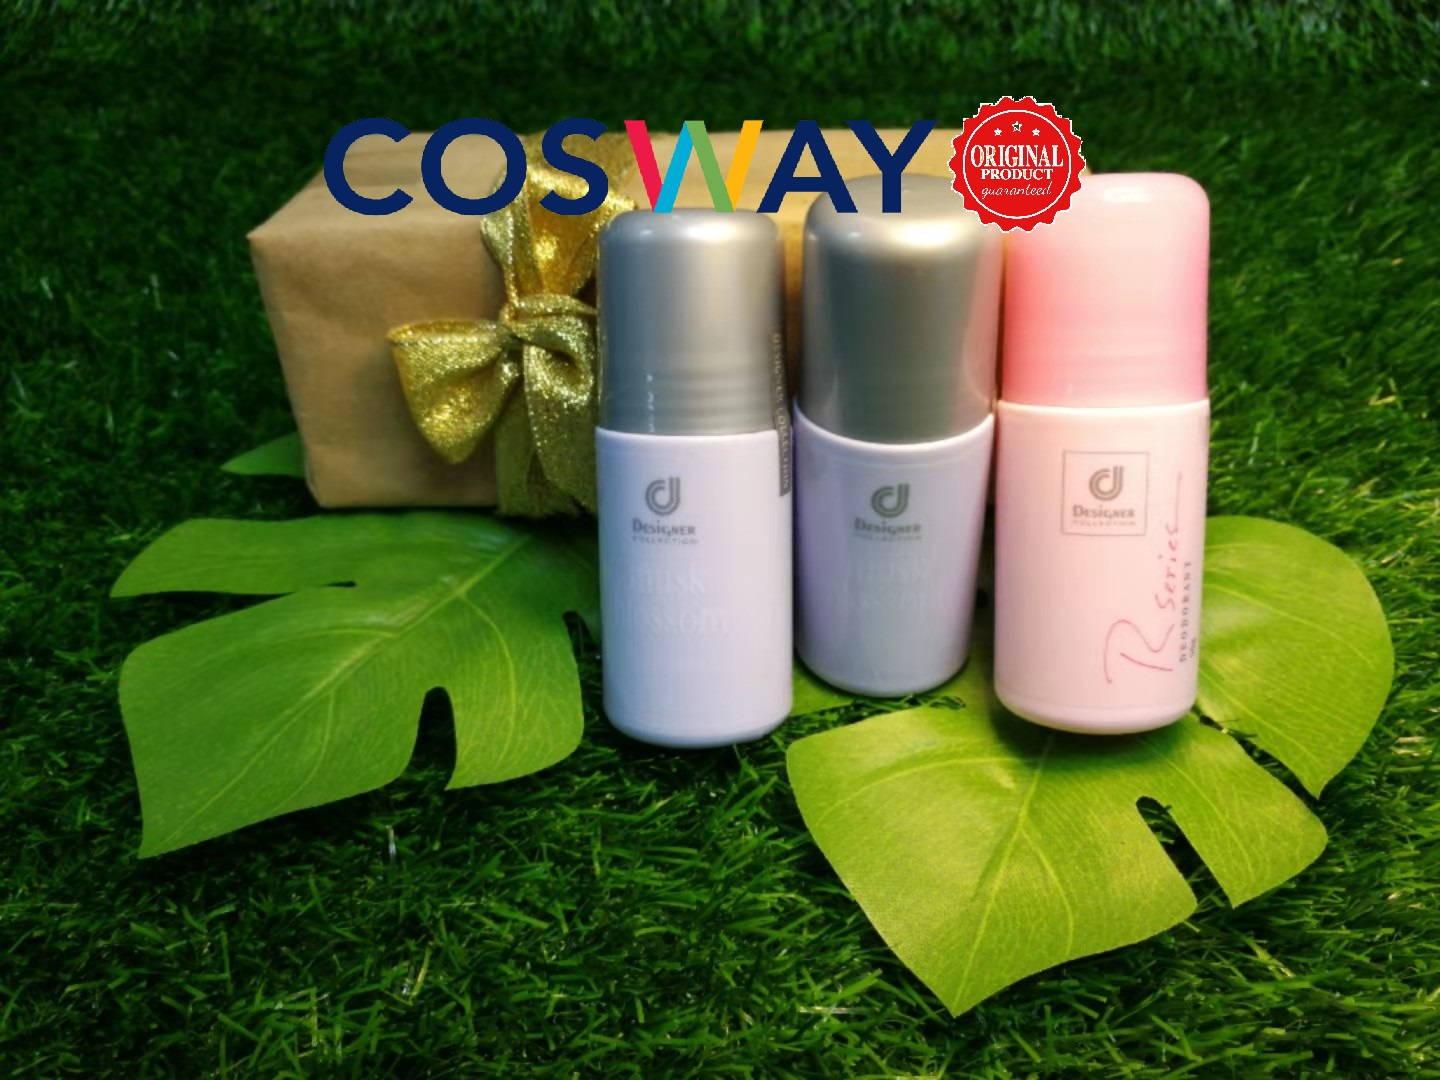 GS014- Cosway Designer Collection Deodorant Series - Gift Set 3in1 (Original Cosway)